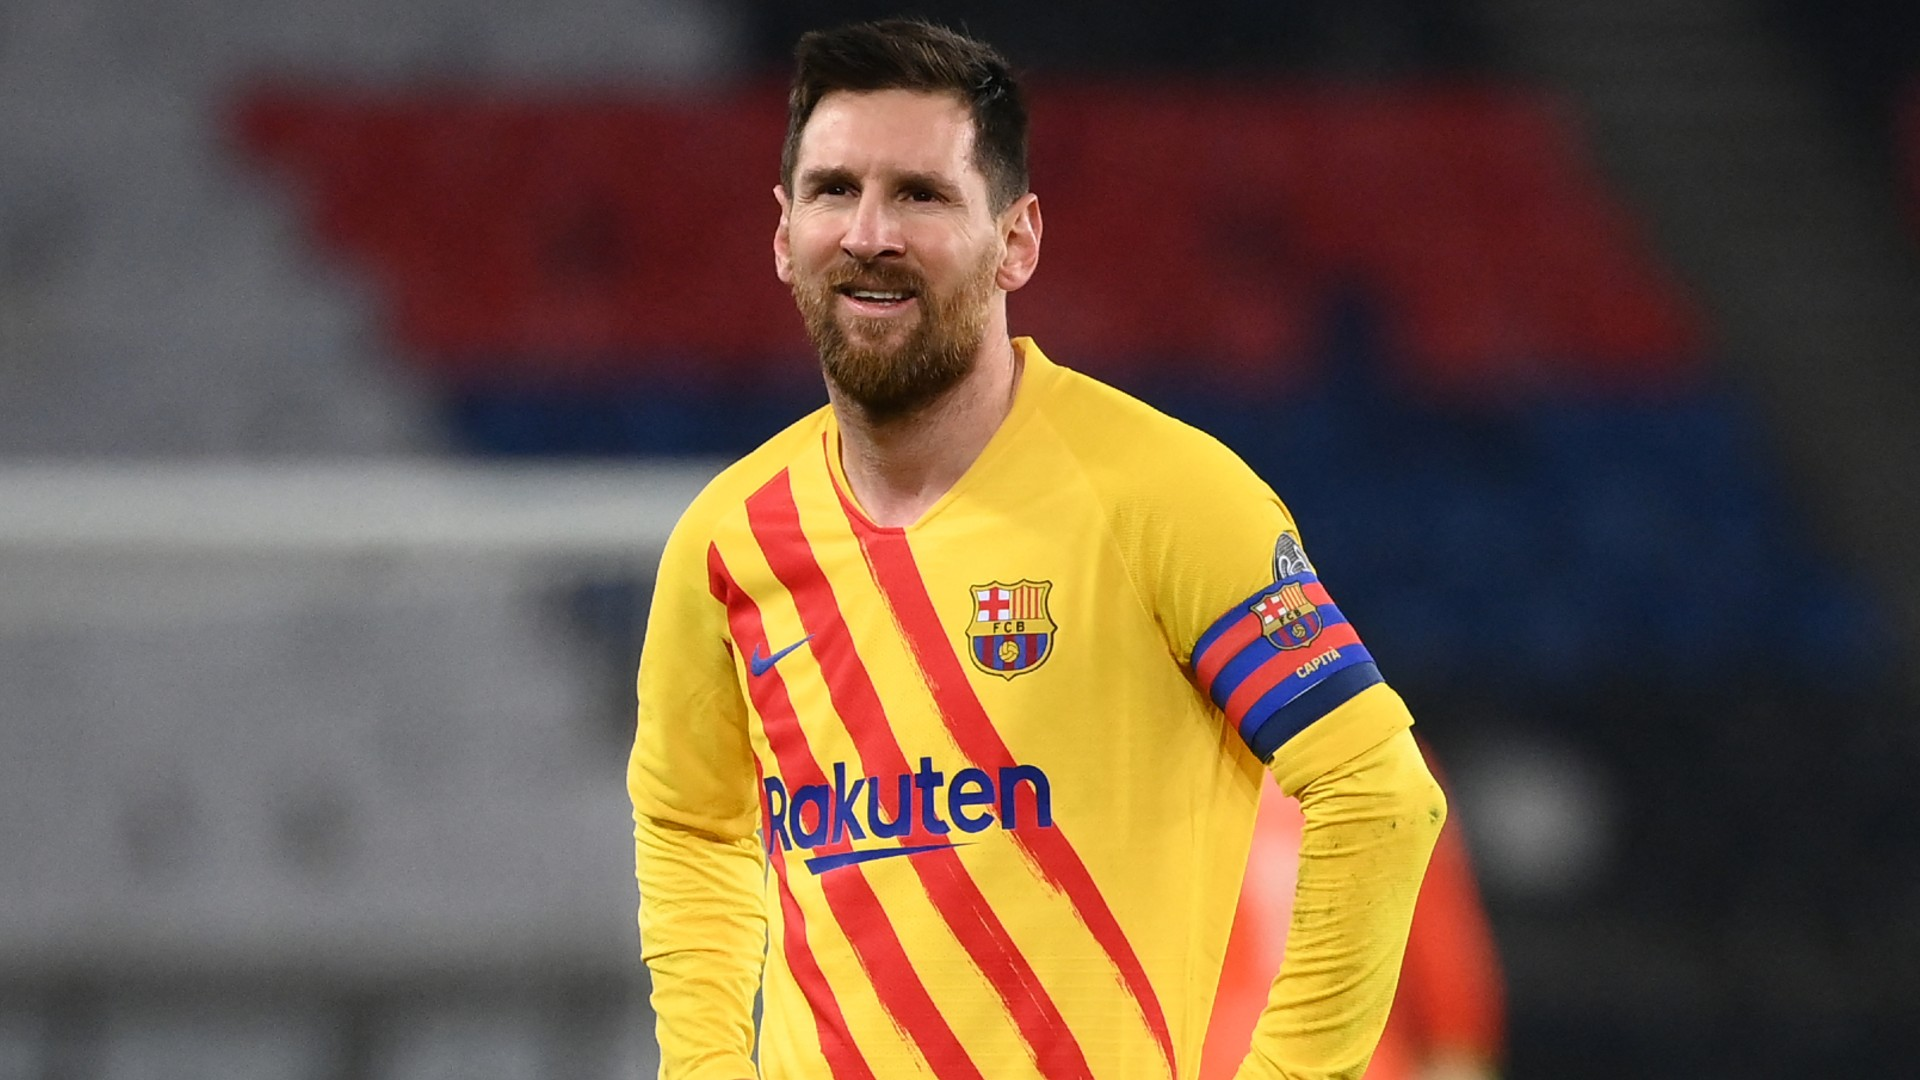 'If Messi had scored that penalty' - Nigerians react to Barcelona's Champions League elimination at PSG